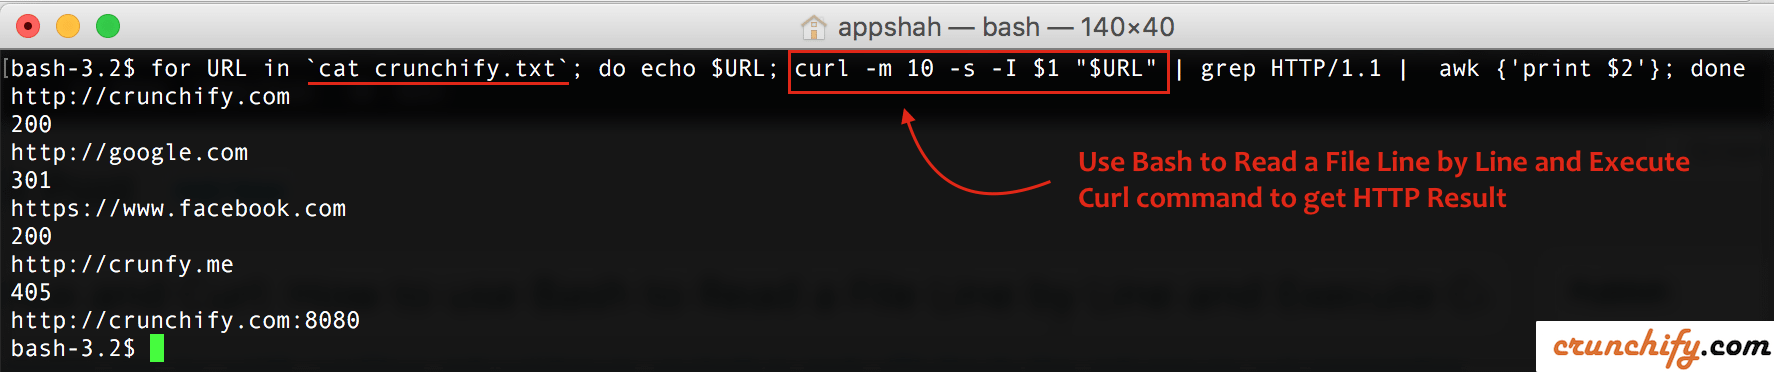 Linux and Curl: How to use Bash to Read a File Line by Line and